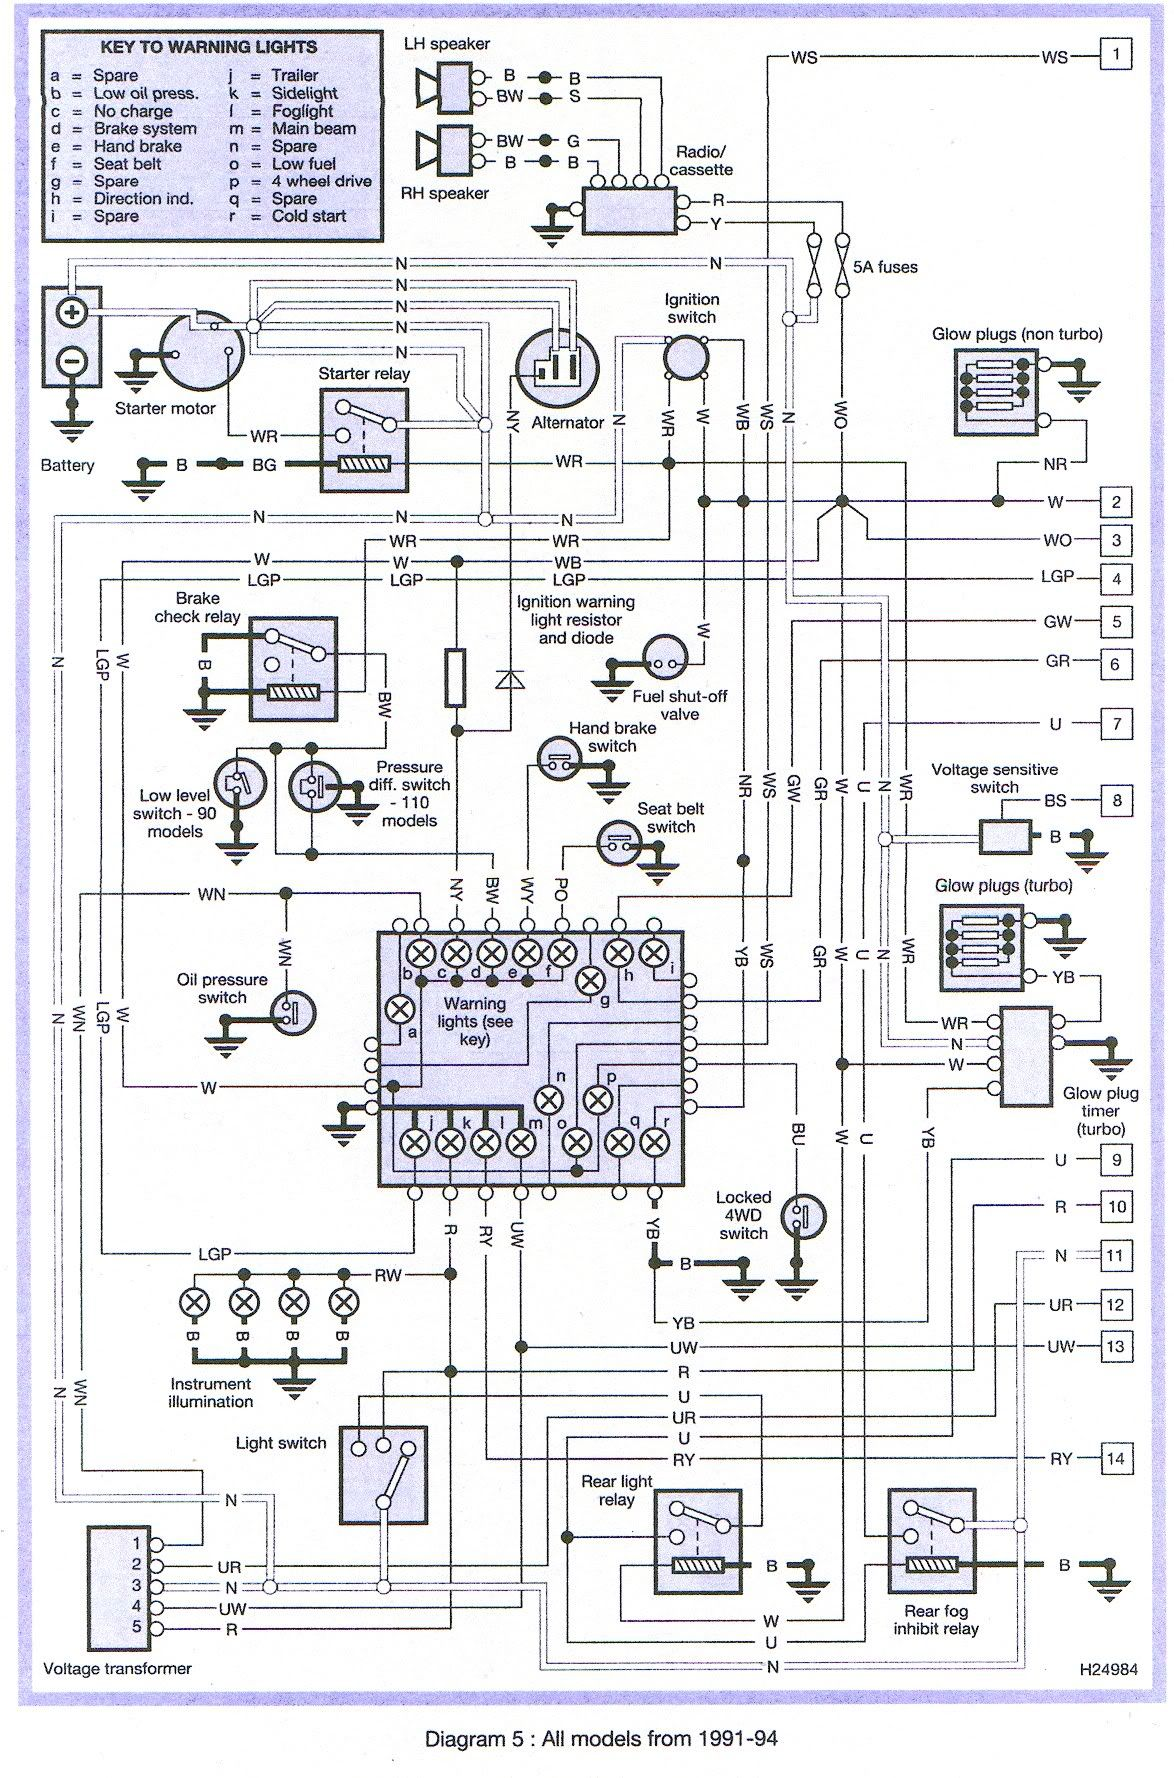 medium resolution of 2004 land rover engine diagram wiring diagram img 2008 range rover hse wiring diagram range rover hse wiring diagram